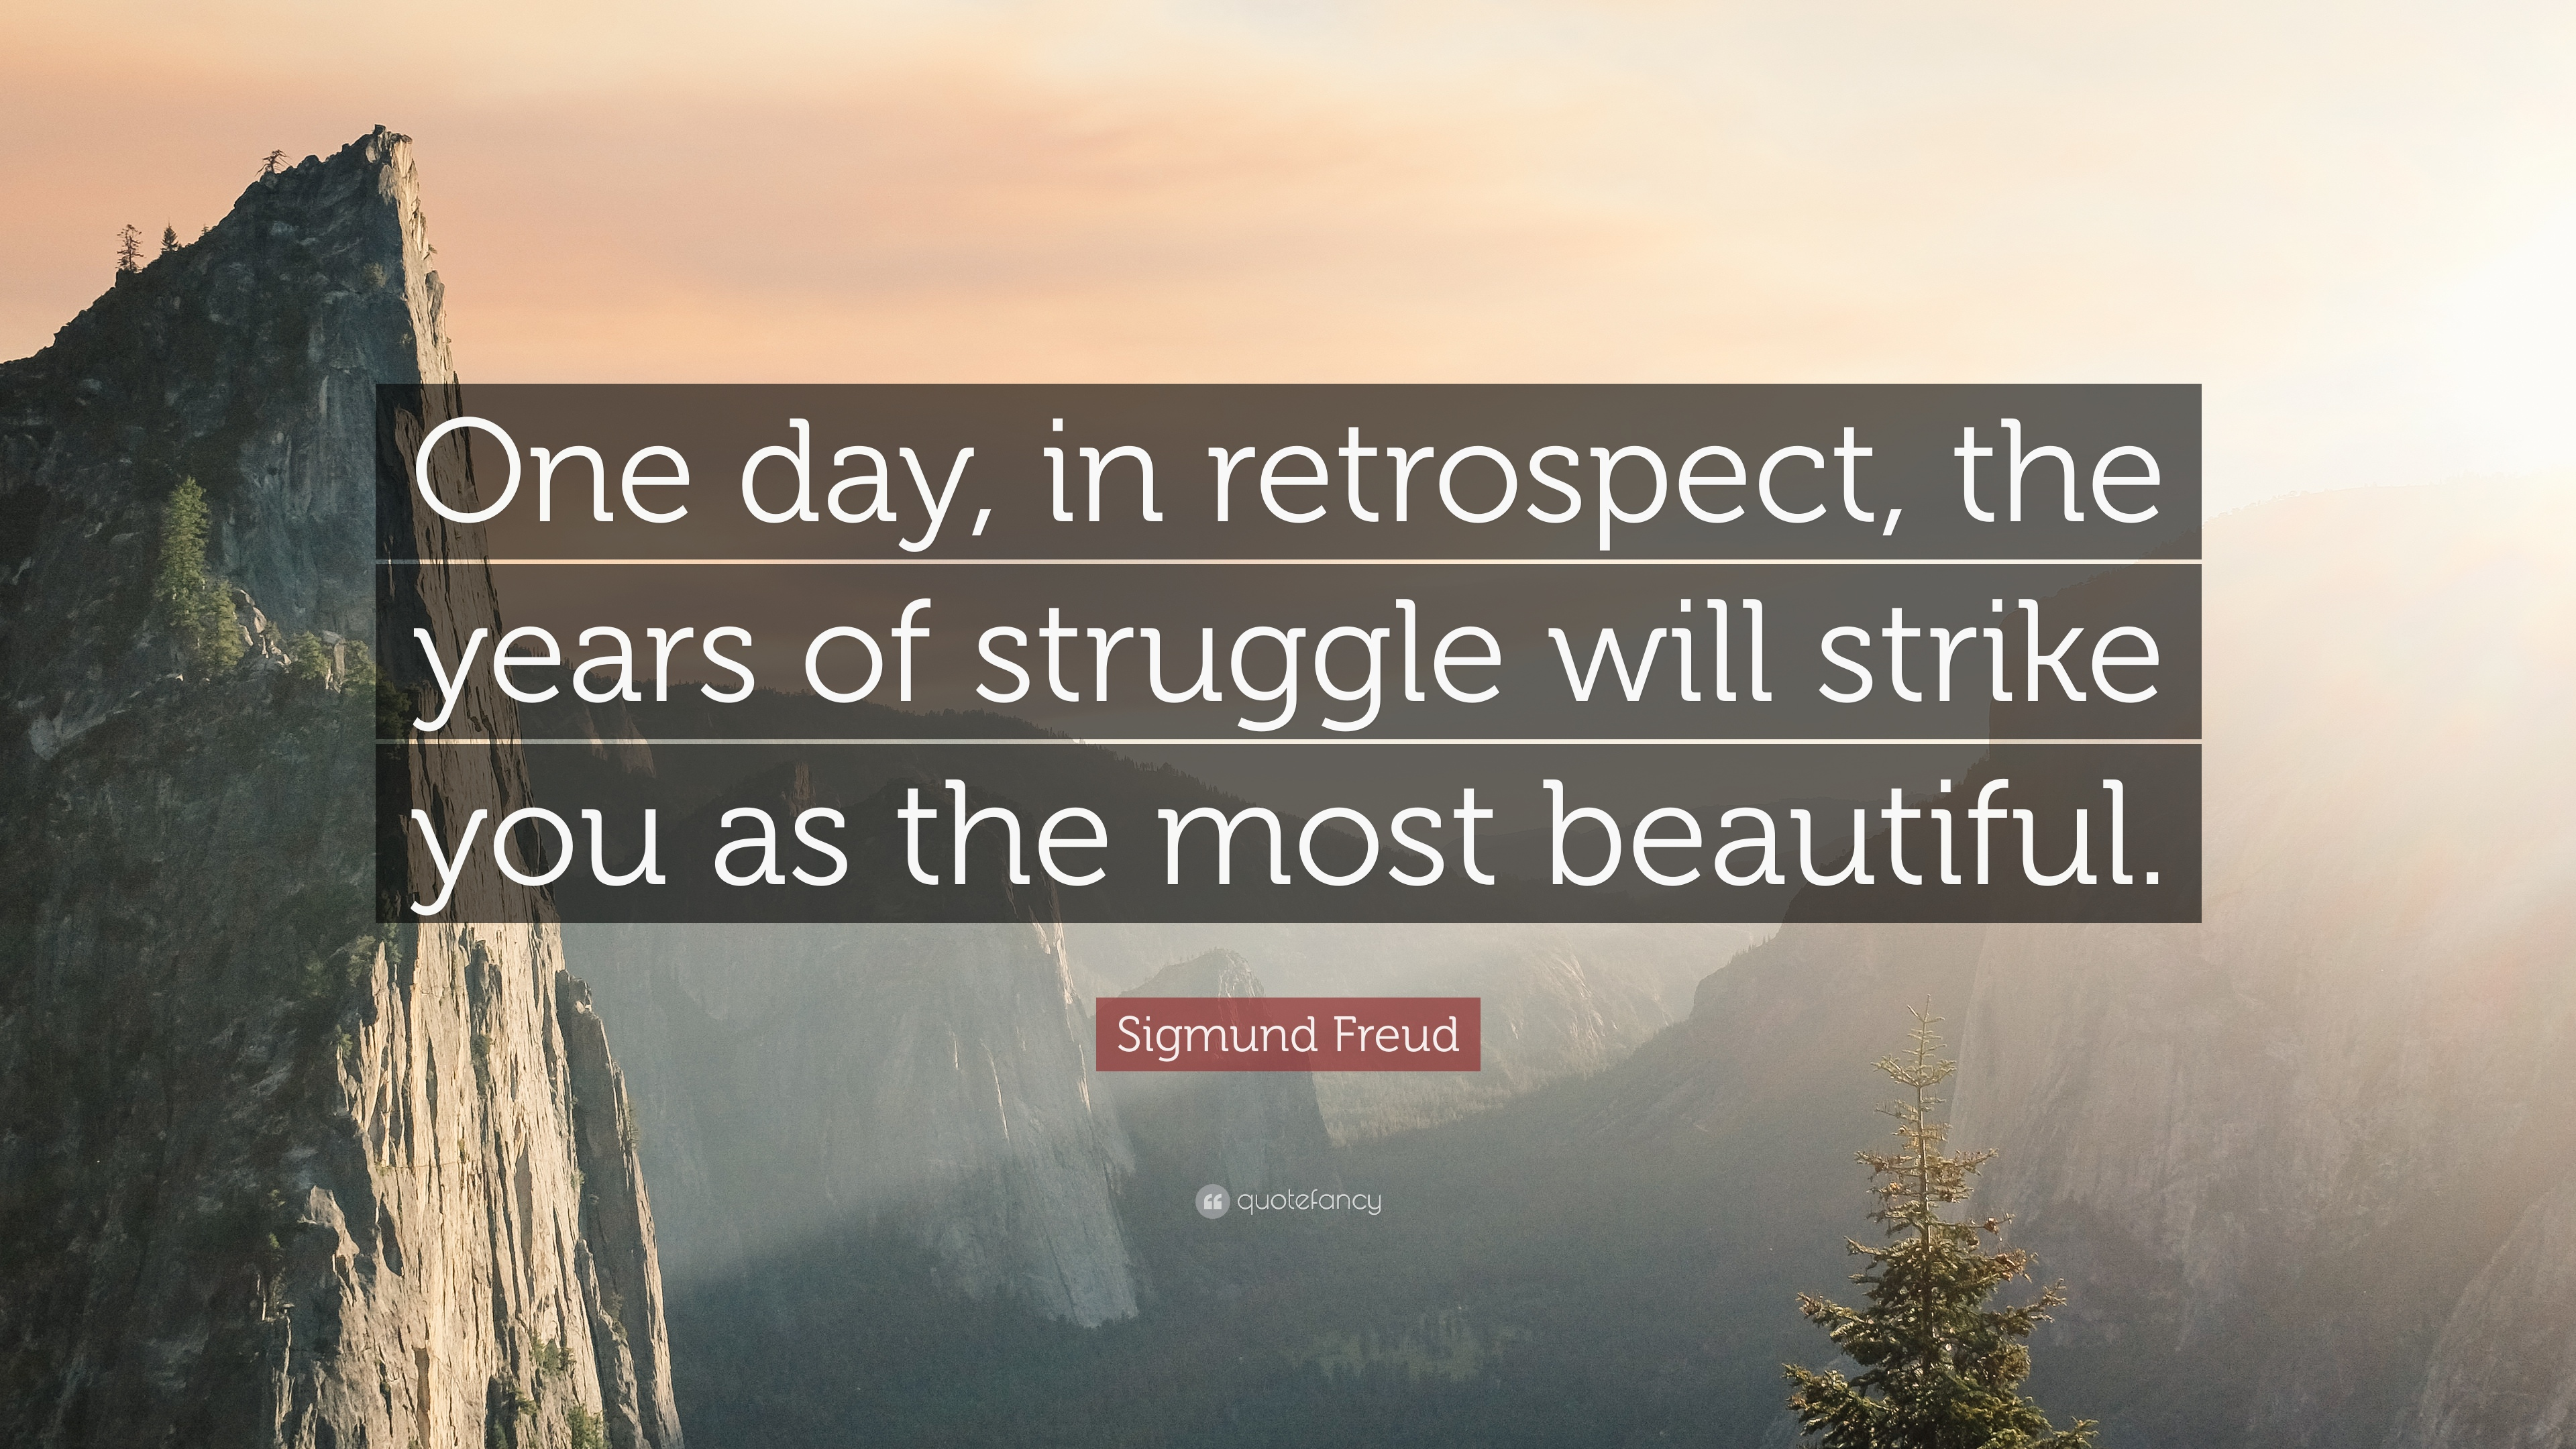 """One Day, In Retrospect, The Years Of Struggle Will Strike I -_ I'.. ' 7' '. : . ' ' 'I'iv'V». ( L-I ' I I I 'I': .I I N' """" Quotdoncg . I L : .' _ . » . K """"a . .rIK '_ . _ J --"""""""" .- X' ,x At, ' A ' ~ ~ ,, '9 X - . ~ I '  U '.~'.-' '7' A . On . V '4 '. _r'-- '  - .. - R T . """" . - T 1_ L', ' '- ' _ """"— , N '2. T _ T -' . .. -'.- 's ' L's-z"""" .- ' * ' ' ' ~ ~:; . , I """" ' -_«. 4. _ R -— O  -.- . _ . . K 56"""","""" T. . T _ -  ' C  . . . ~ """"2"""""""" § .l. G': ~ ' , R - . ~ , ' ' , .. . T V N. . -- w """" - . ~' . , ' . .' , T . 'a , .- U' § ' """"2;"""": ¢ ' Z: ' :3 '   .  . _ . A V-I I: L. K . _ I' . ' ,~ \ .3 . >  I ' ~ . ~ .4- ' R ' ' ~   Jy-.. ' """" F .' I"""" ;- """"' «. """"' I 1. """" I A .1 """"k_ https://inspirational.ly"""